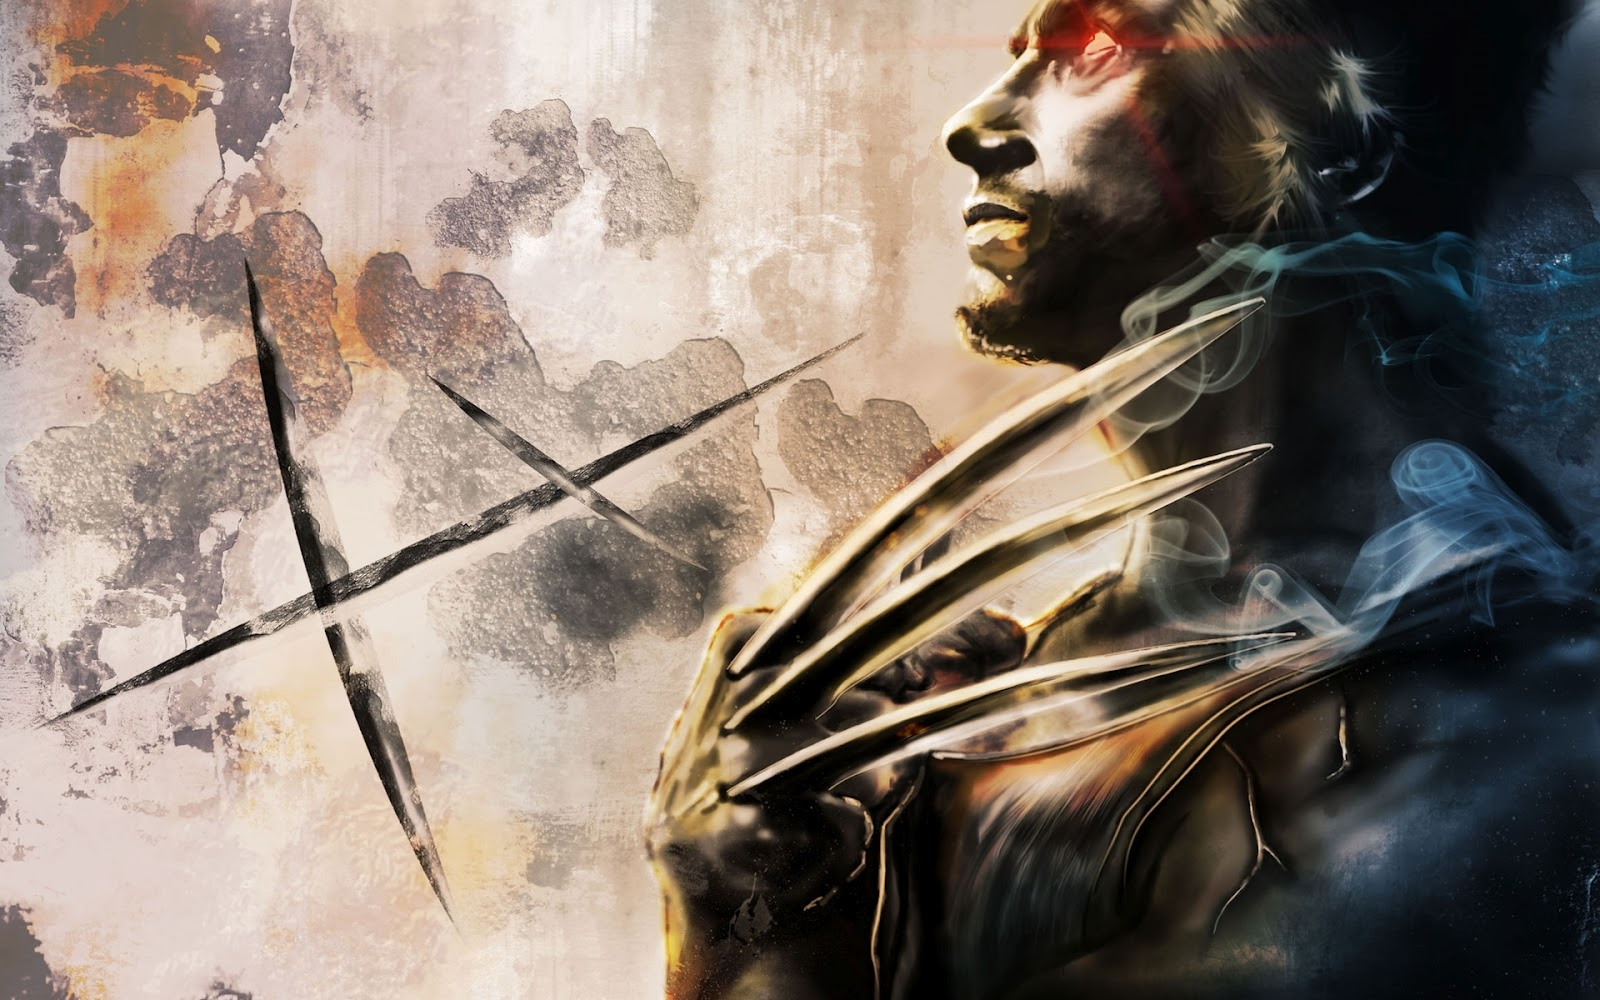 wolverine hd wallpapers - photo #4